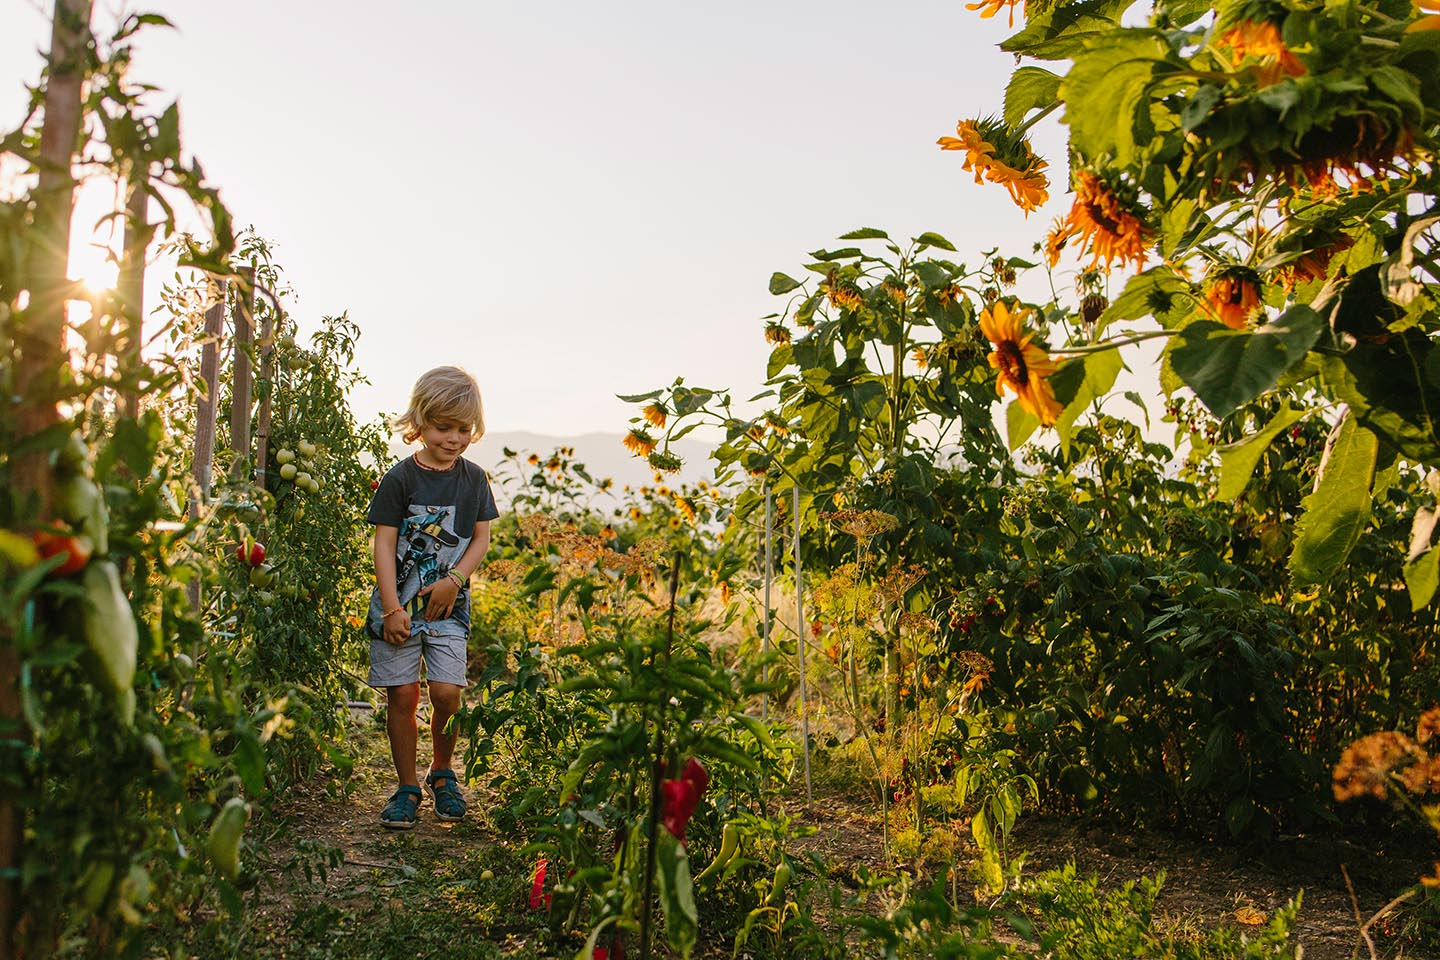 Family photography, boy in the garden, flowers,Alice Payne photography